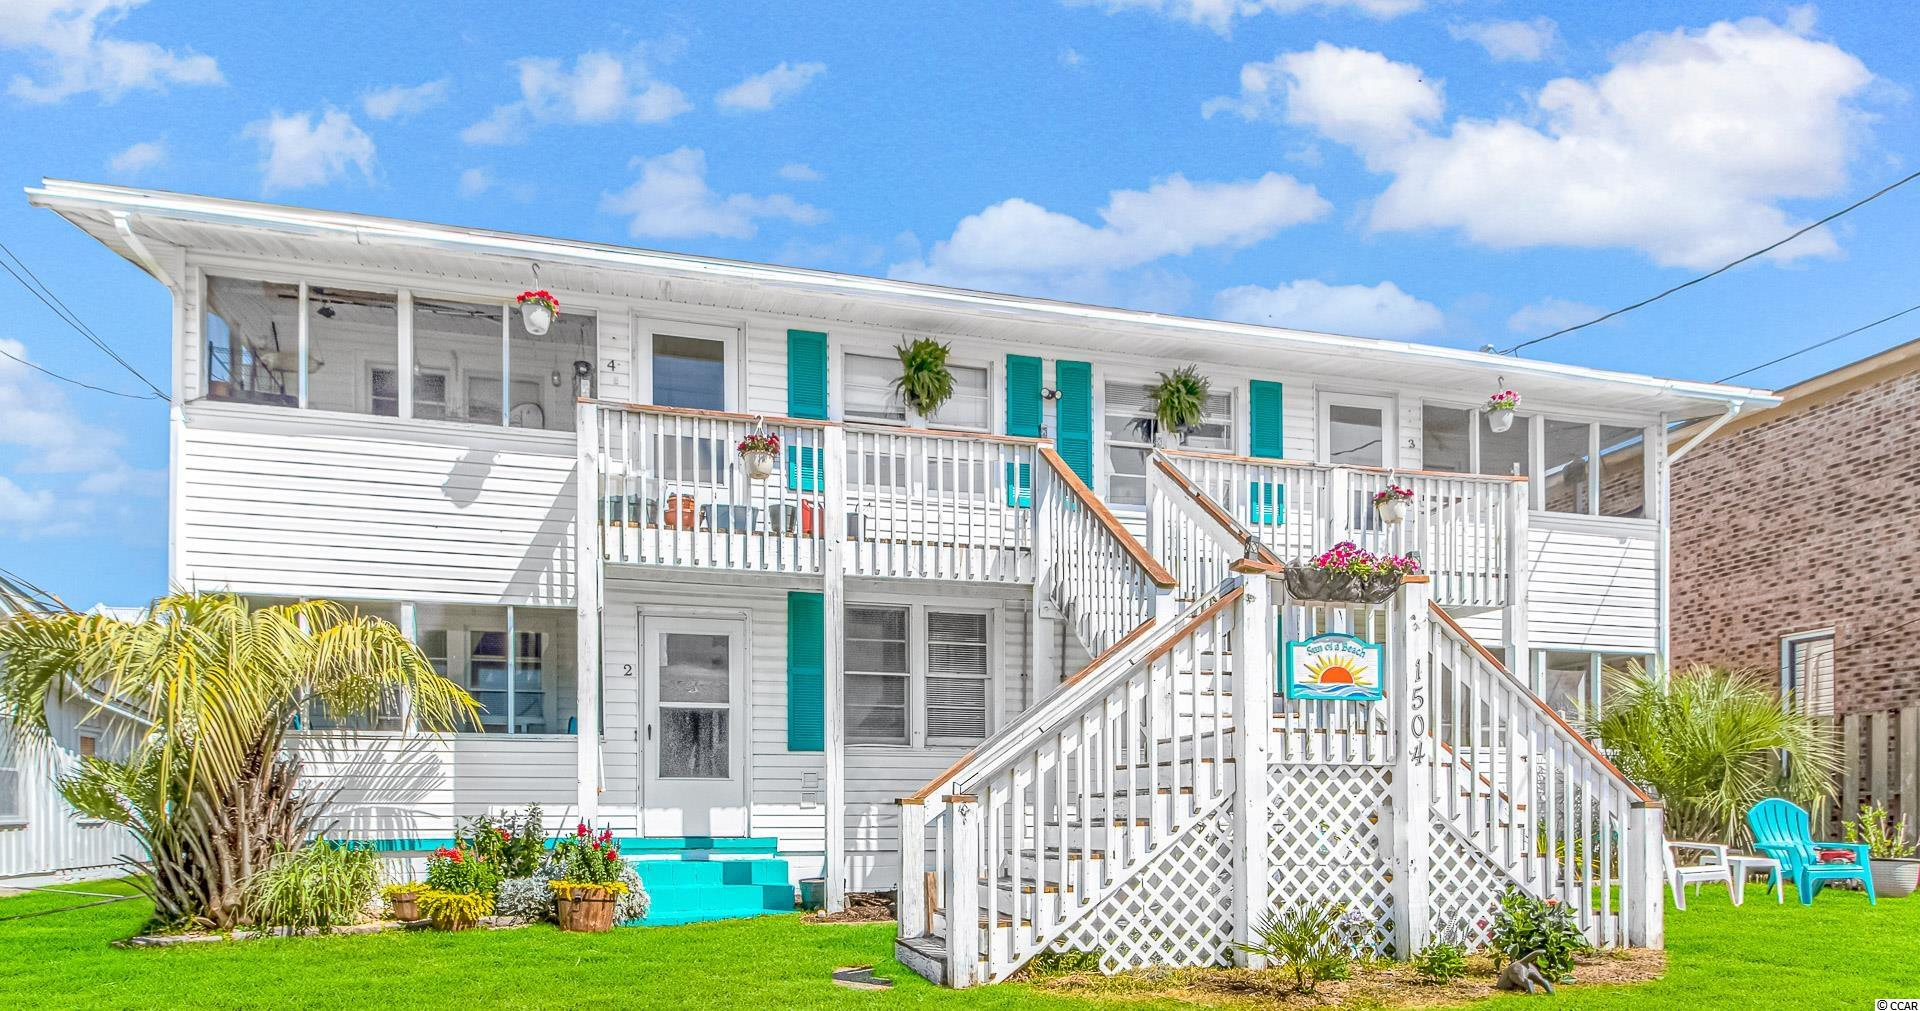 CASHFLOW!!! If you've been looking for a monster investment property, look no further. This five unit multi family property is a rare findand investor's dream. The property features 4, two bedroom 1 bath units, all rented as well as a 3 bedroom home on the same lot. Theproperty sits just a block off the beach and the front porches of the upstairs units even have an ocean view. Located right in the heart ofNorth Myrtle Beach, this property is unbeatable. All units are rented and currently cashflowing. Financials can be provided, so just ask!You won't find anything else like this in the NMB area. Take a look before it's gone!